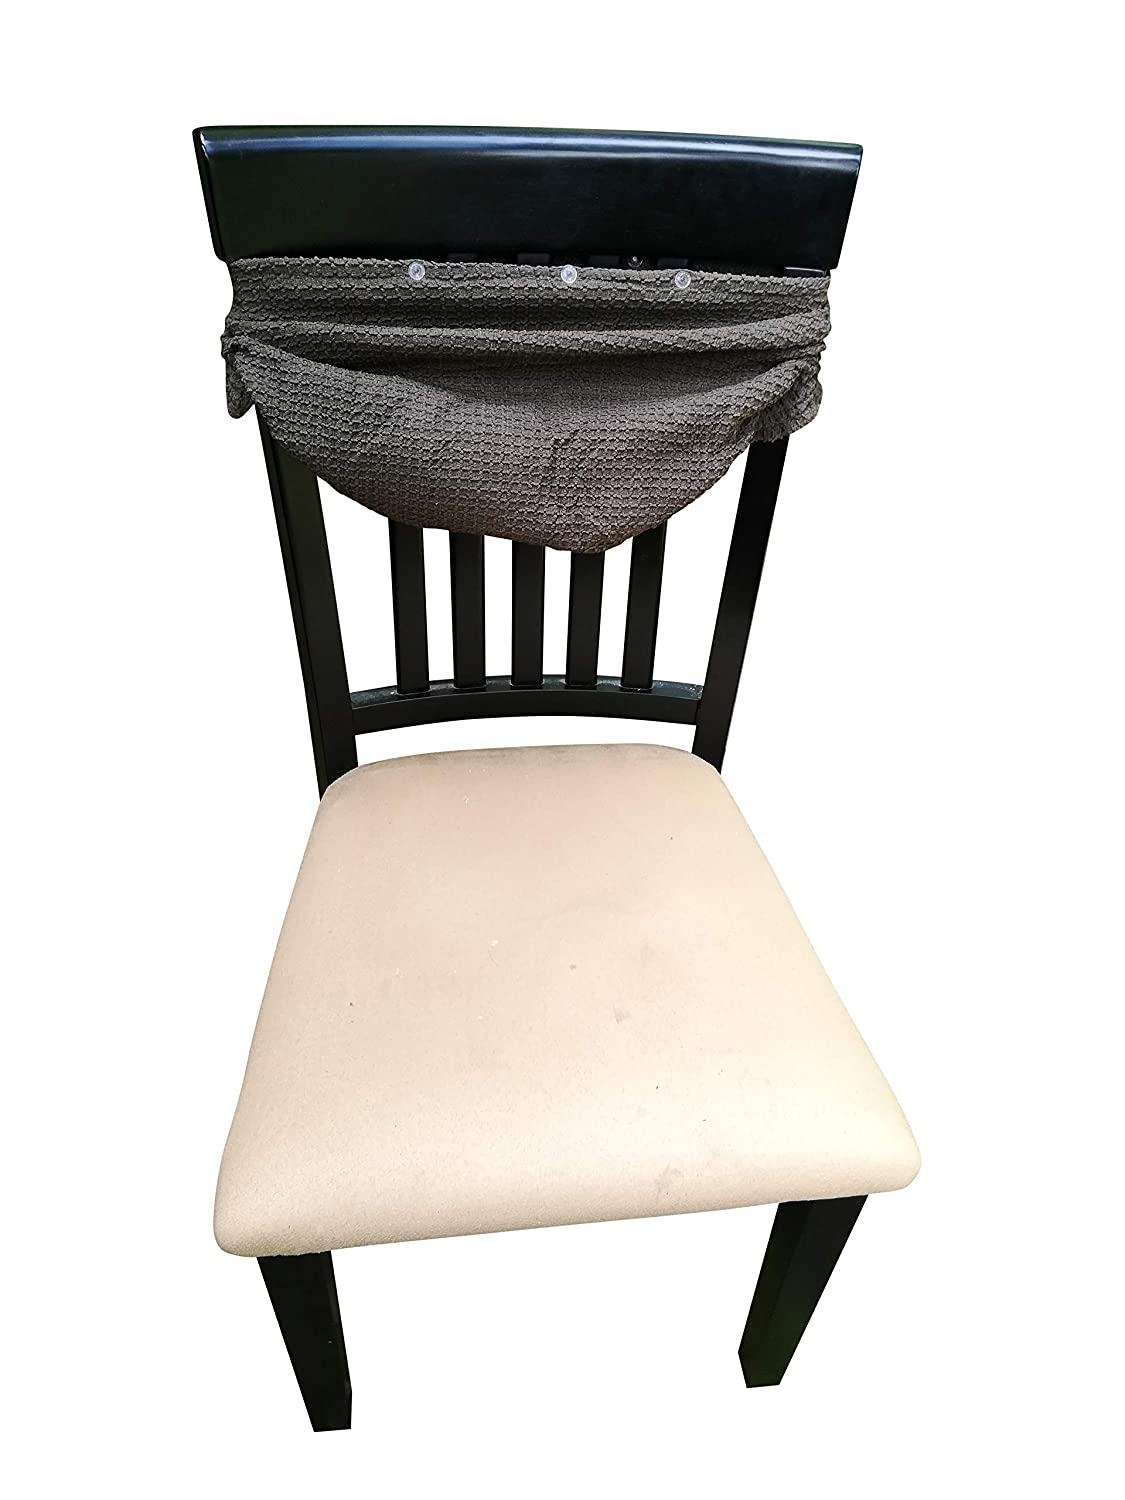 Waterproof Dining Chair Cover Protector - Pack 2 - Perfect For Pets, Kids, Elderly, Restaurants, Party - Machine Washable, Snugly Fit, Removable, Clean the Mess Easily (Faded Brown(with buttons))